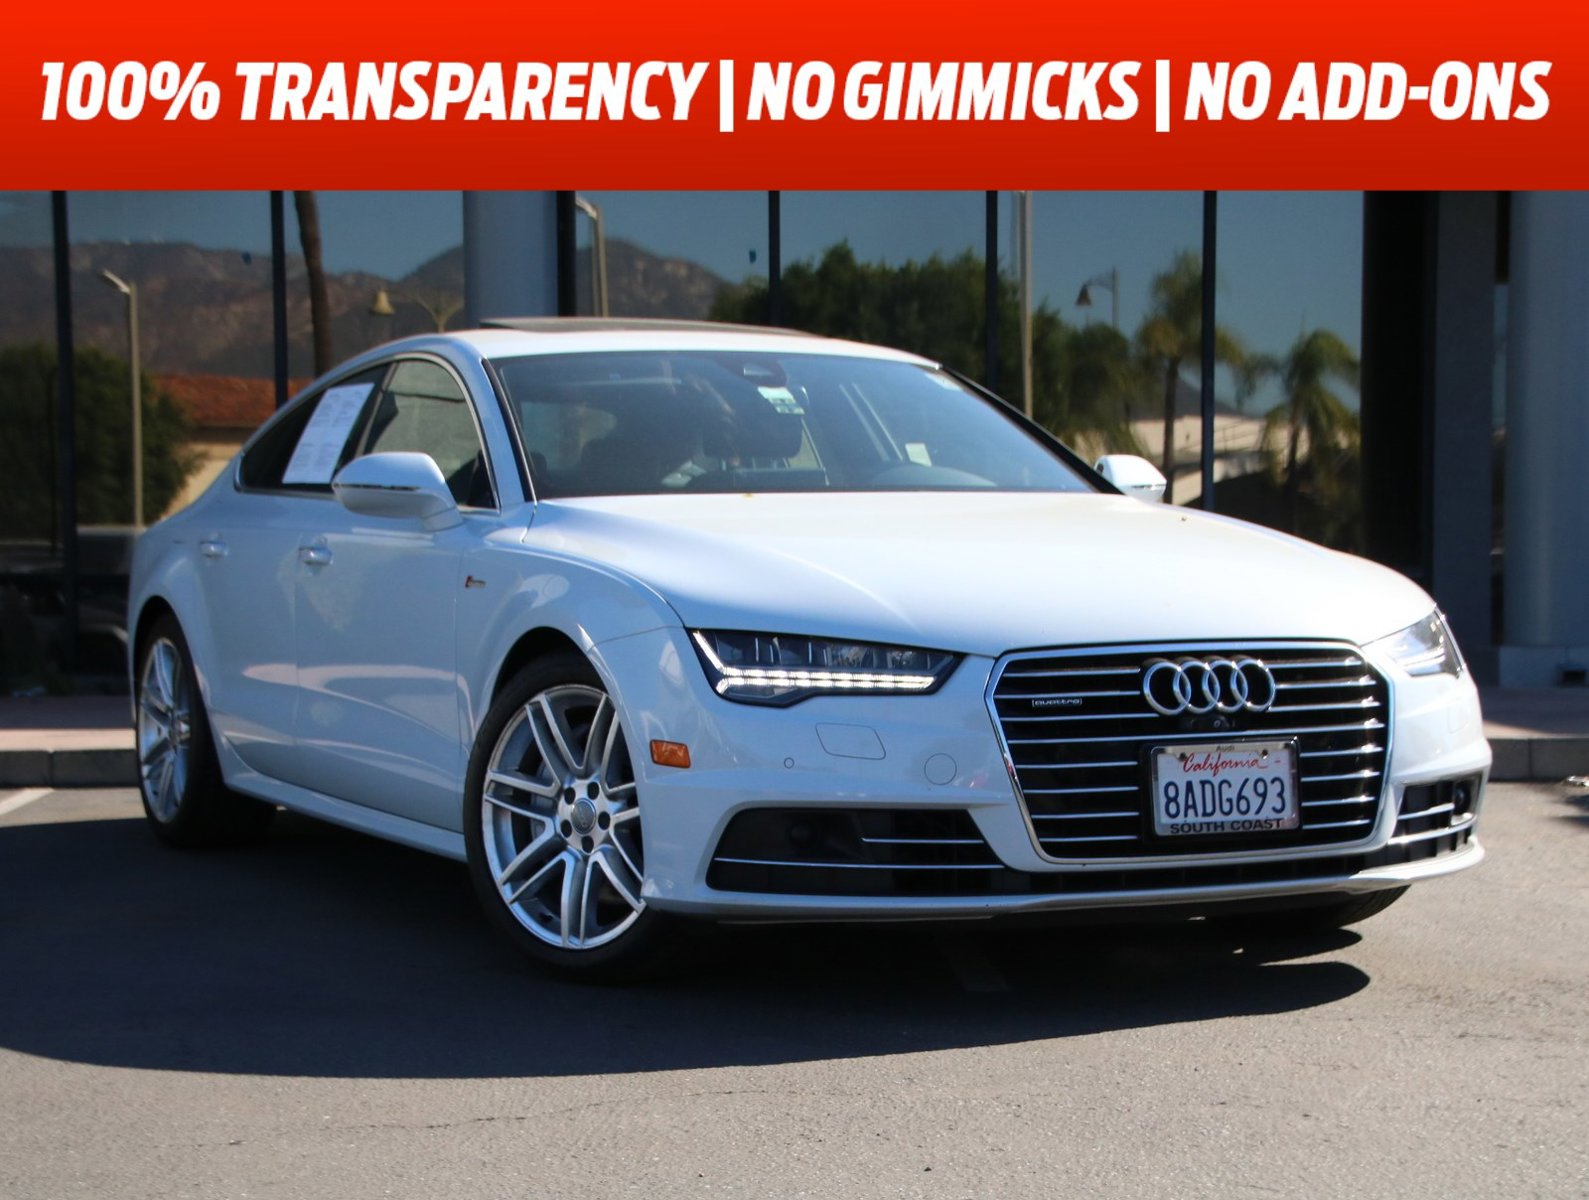 2017 Audi A7 Premium Plus 3.0 TFSI Premium Plus Intercooled Supercharger Premium Unleaded V-6 3.0 L/183 [13]